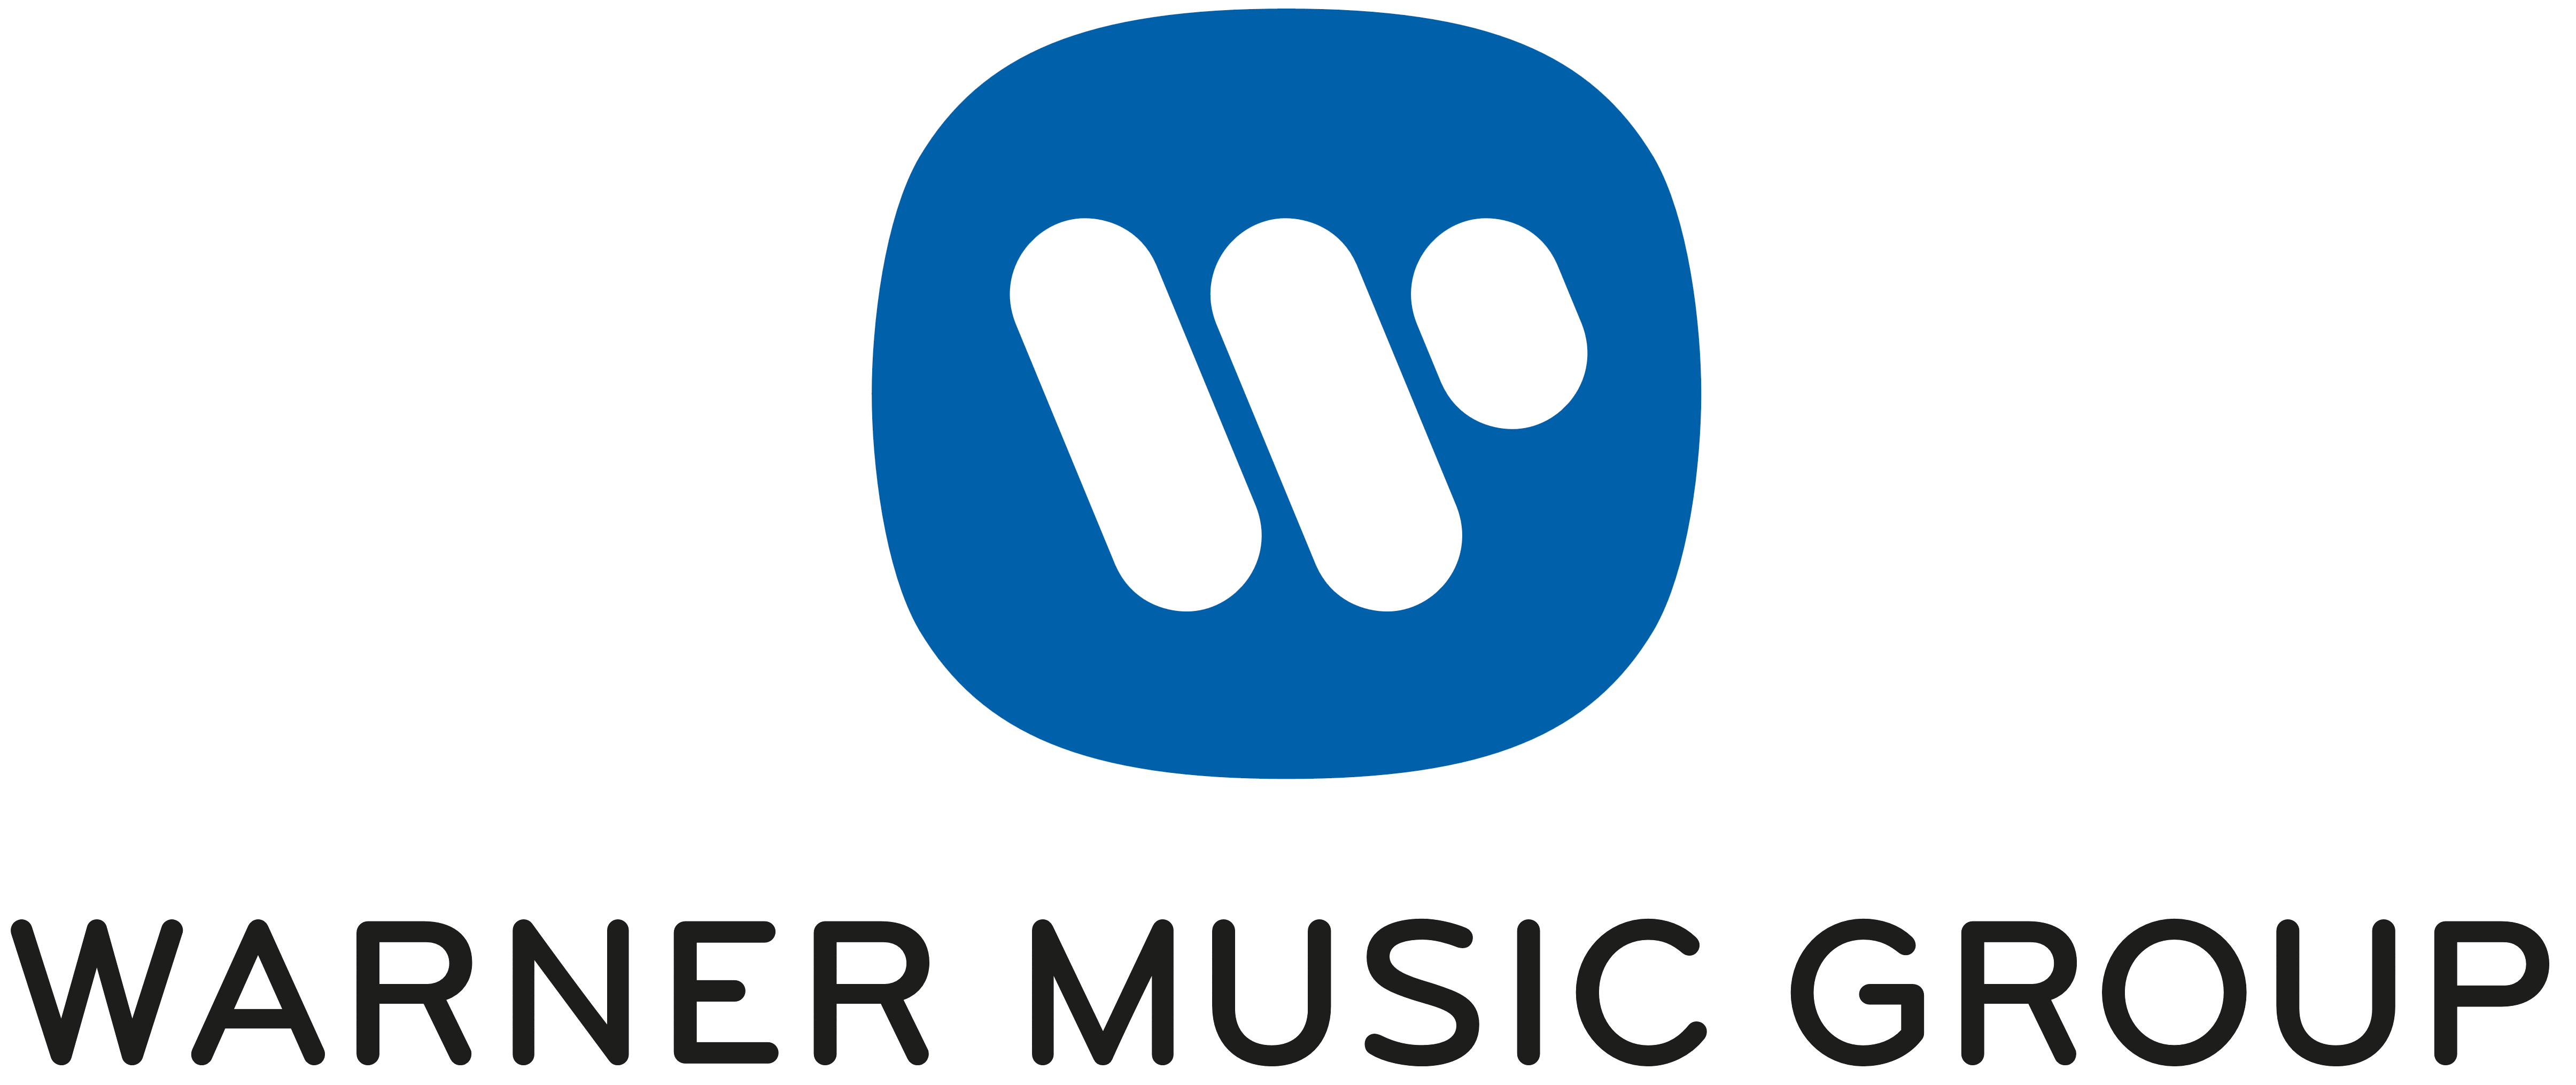 IPO Warner Music Group